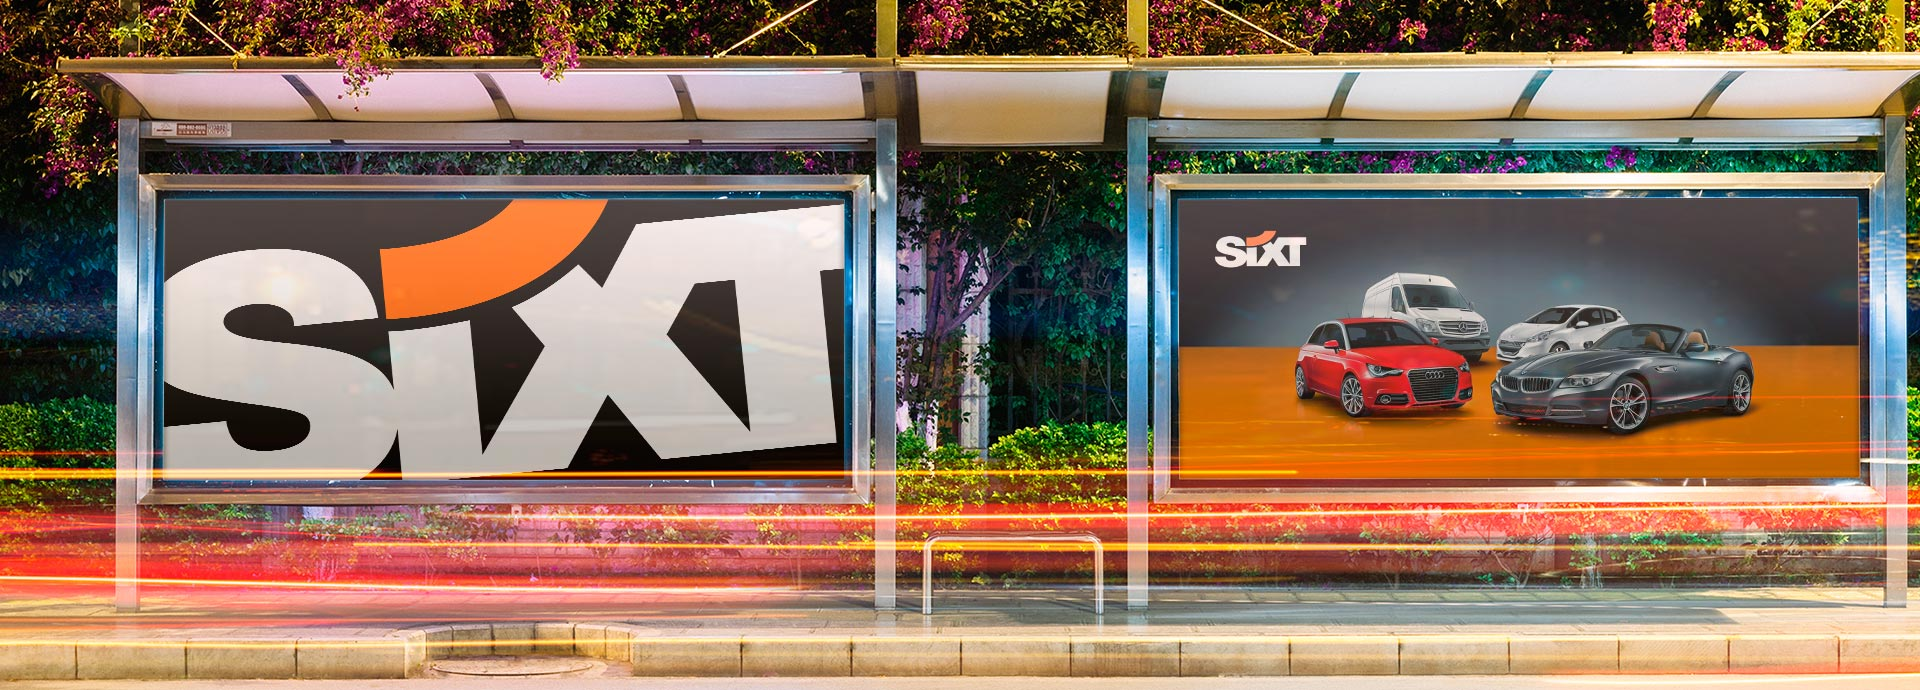 Sixt Miami - Car Rental Deals